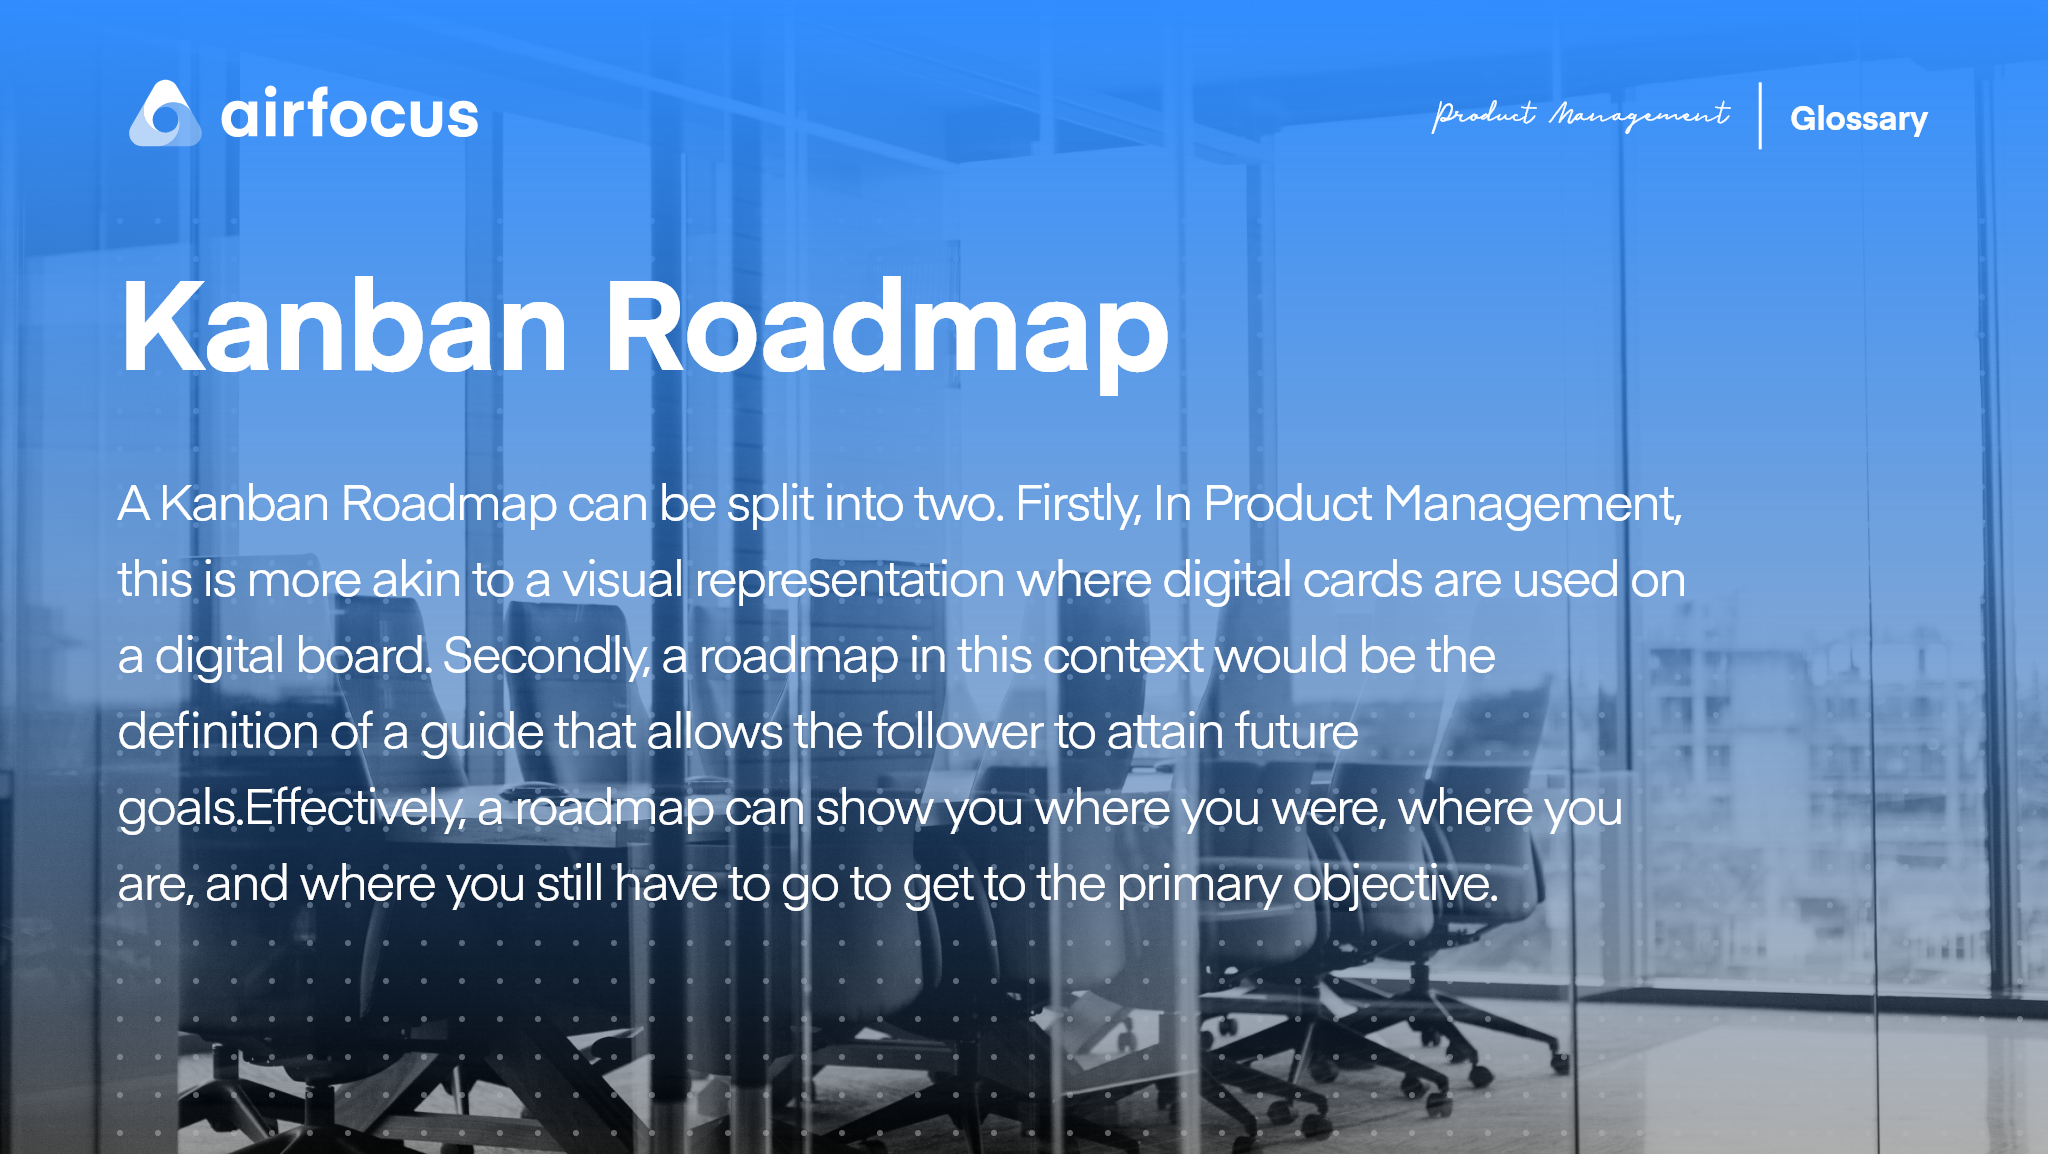 What is a Kanban Roadmap?